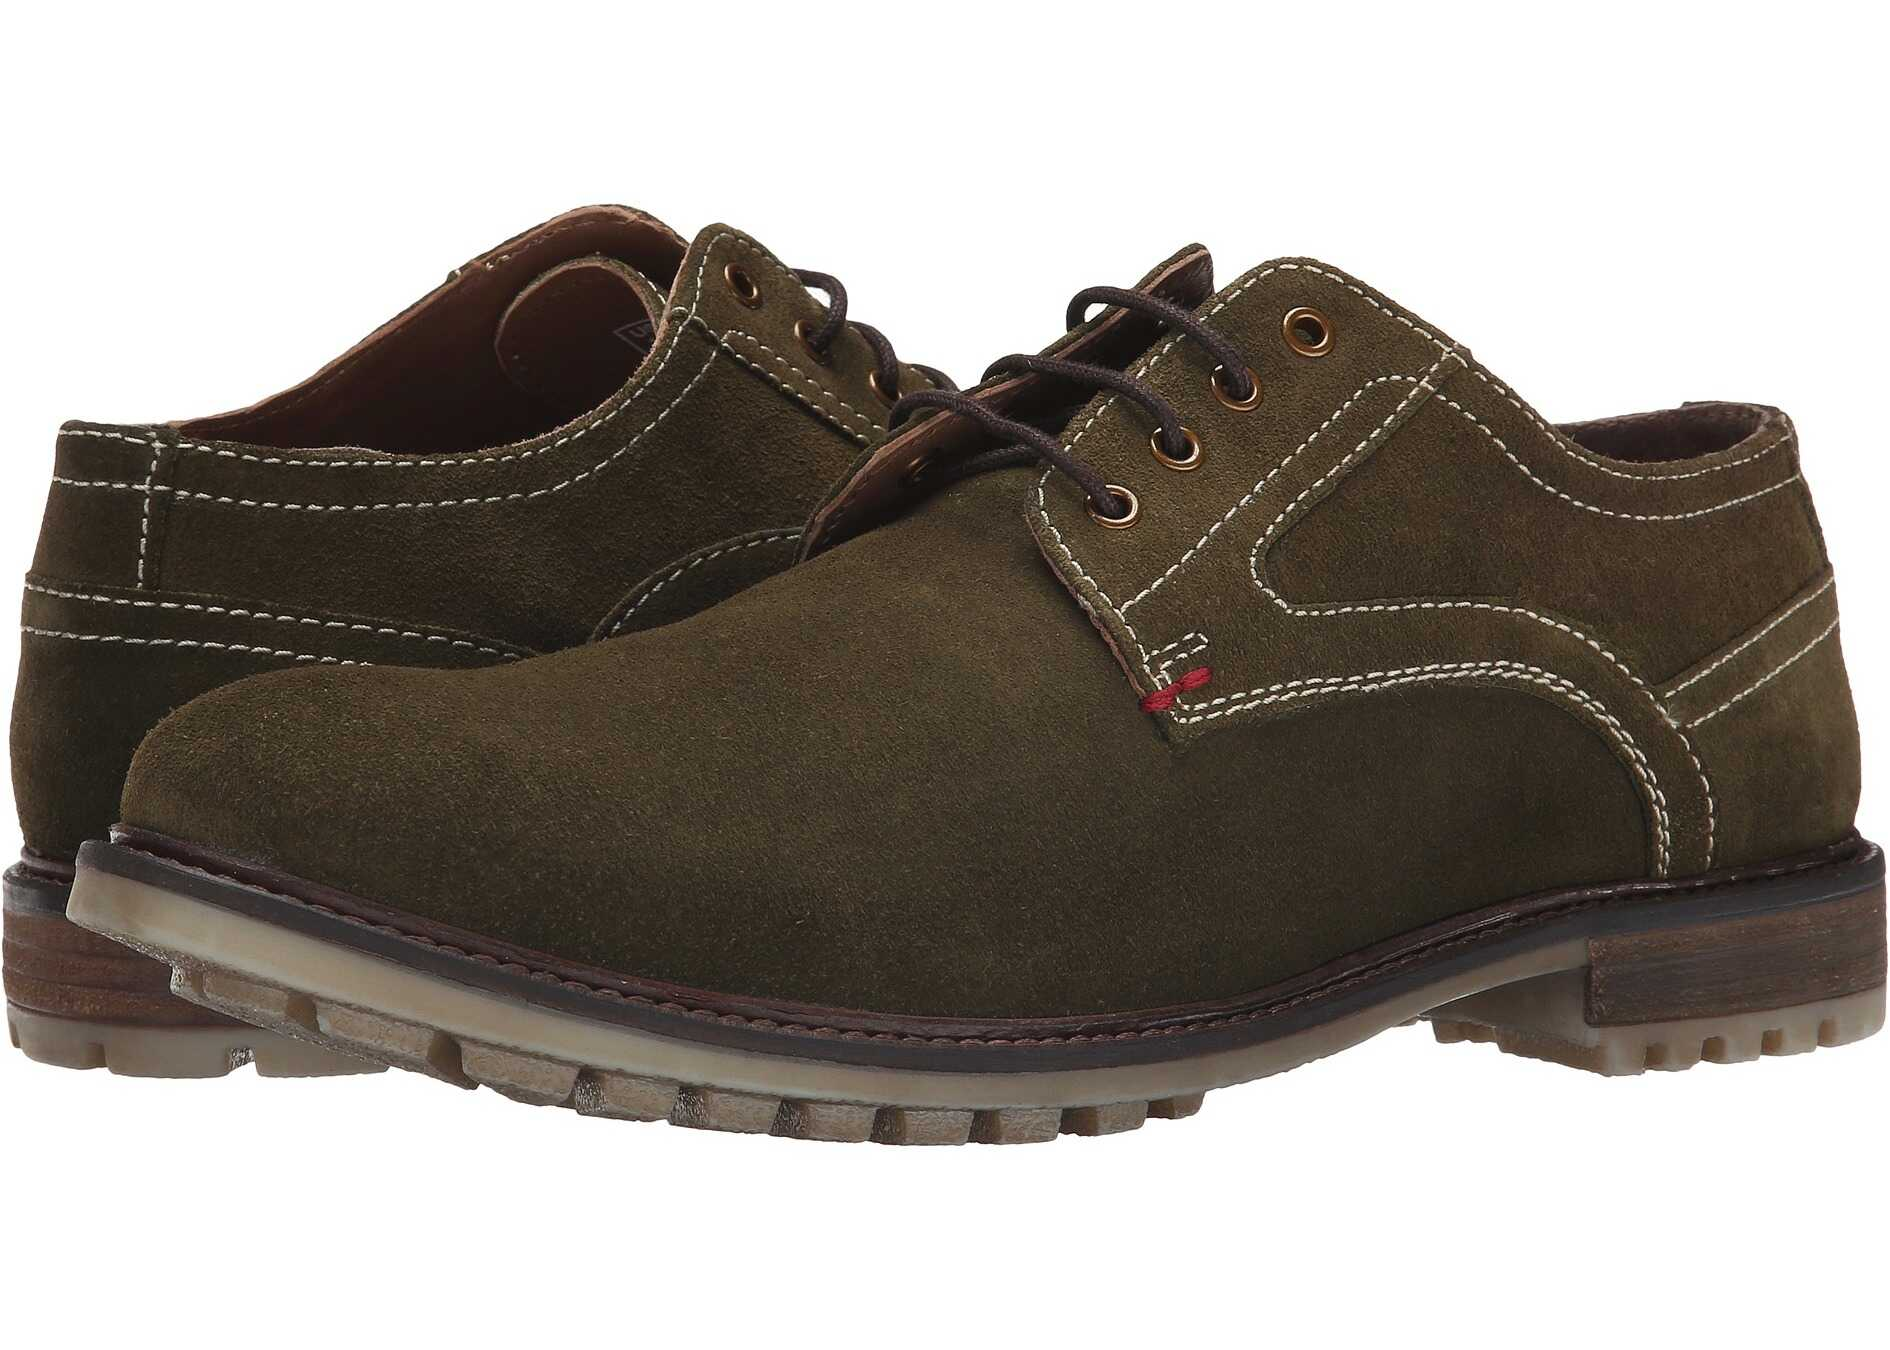 Hush Puppies Rohan Rigby Olive Suede